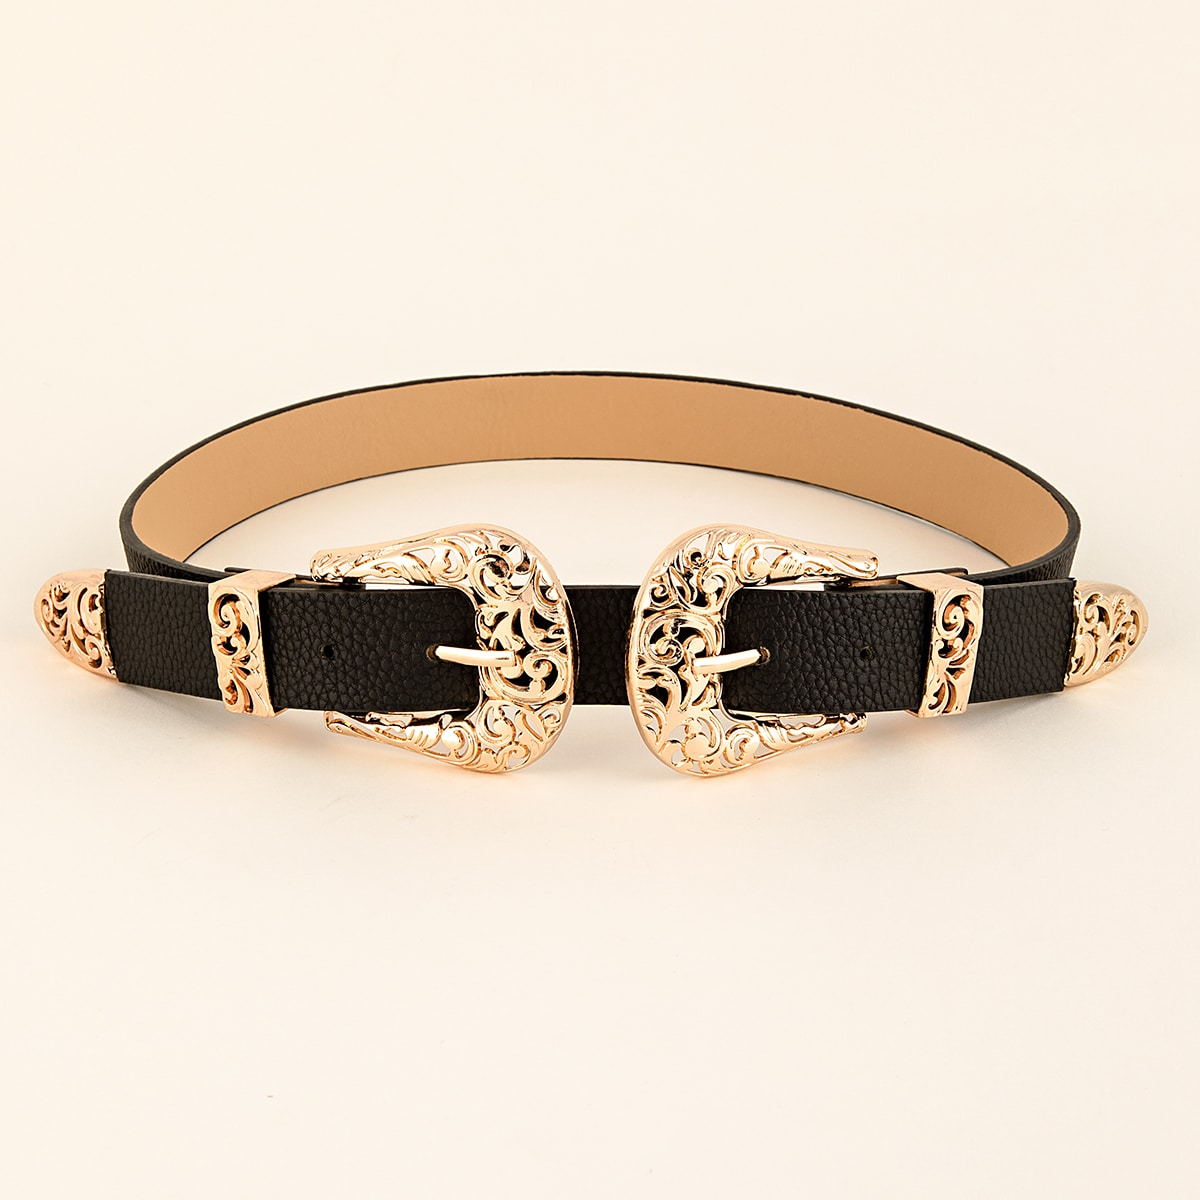 SHEIN / Hollow Out Western Buckle Belt